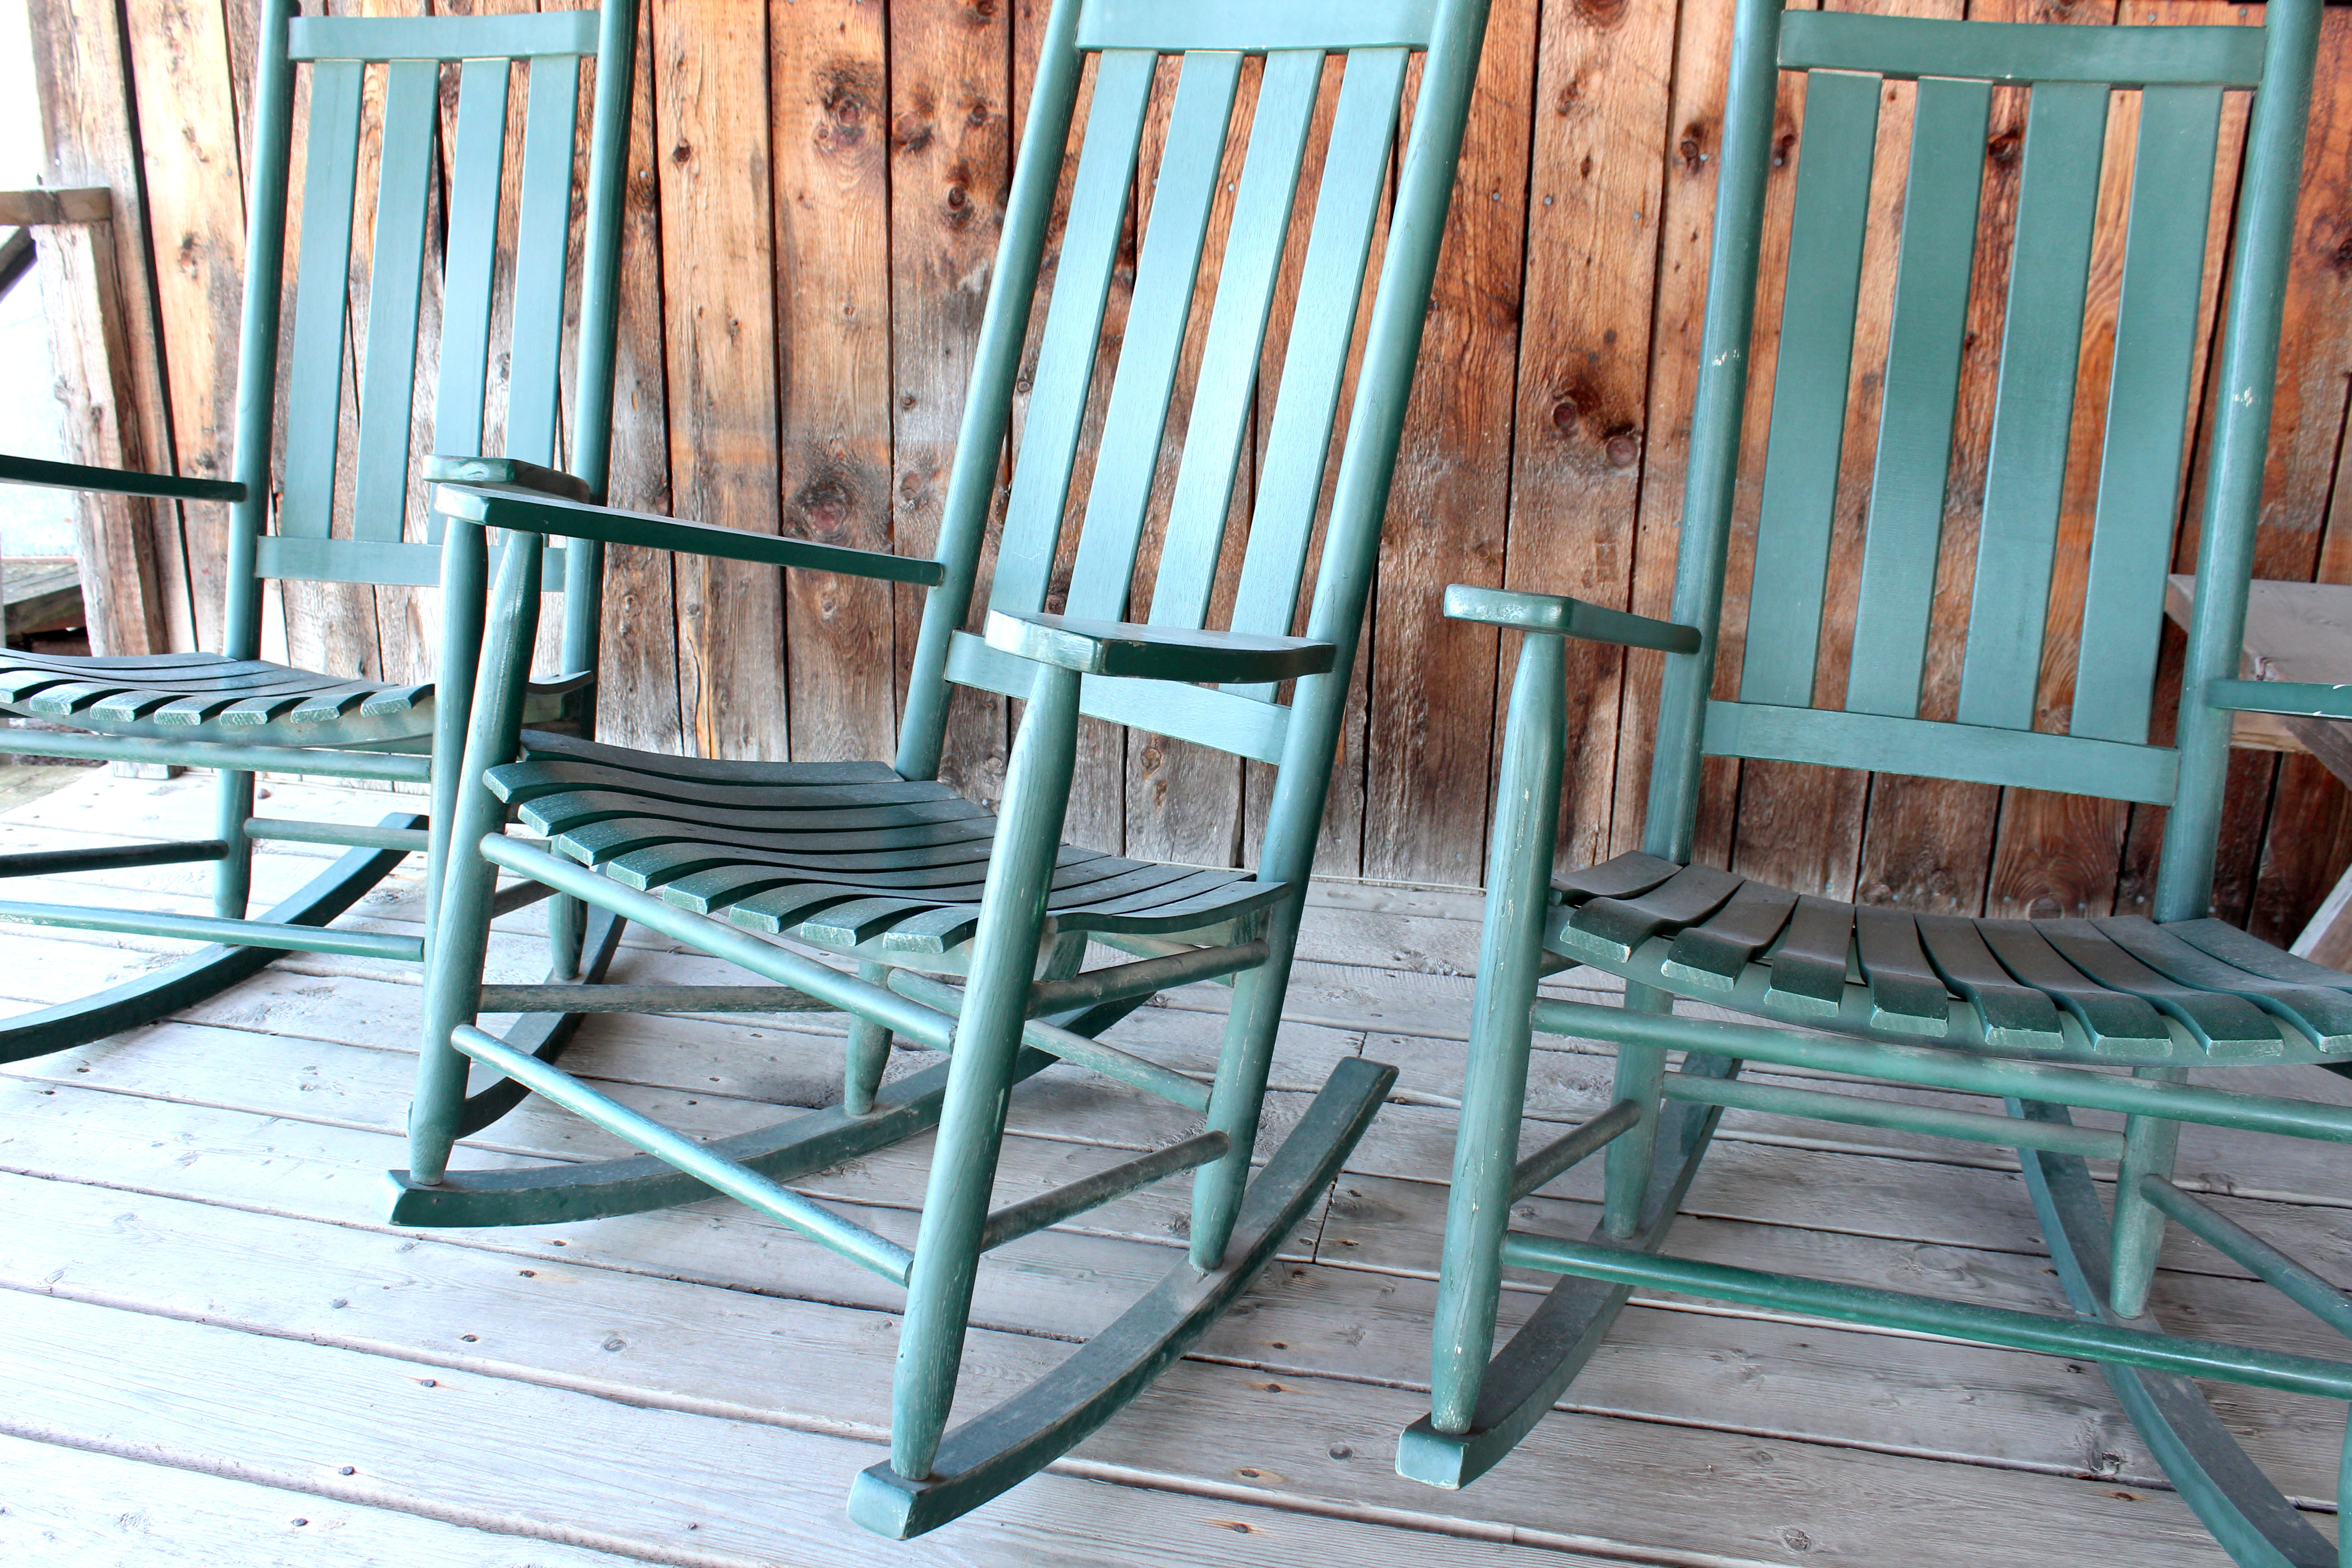 rocking chairs on an old porch restoration family counseling